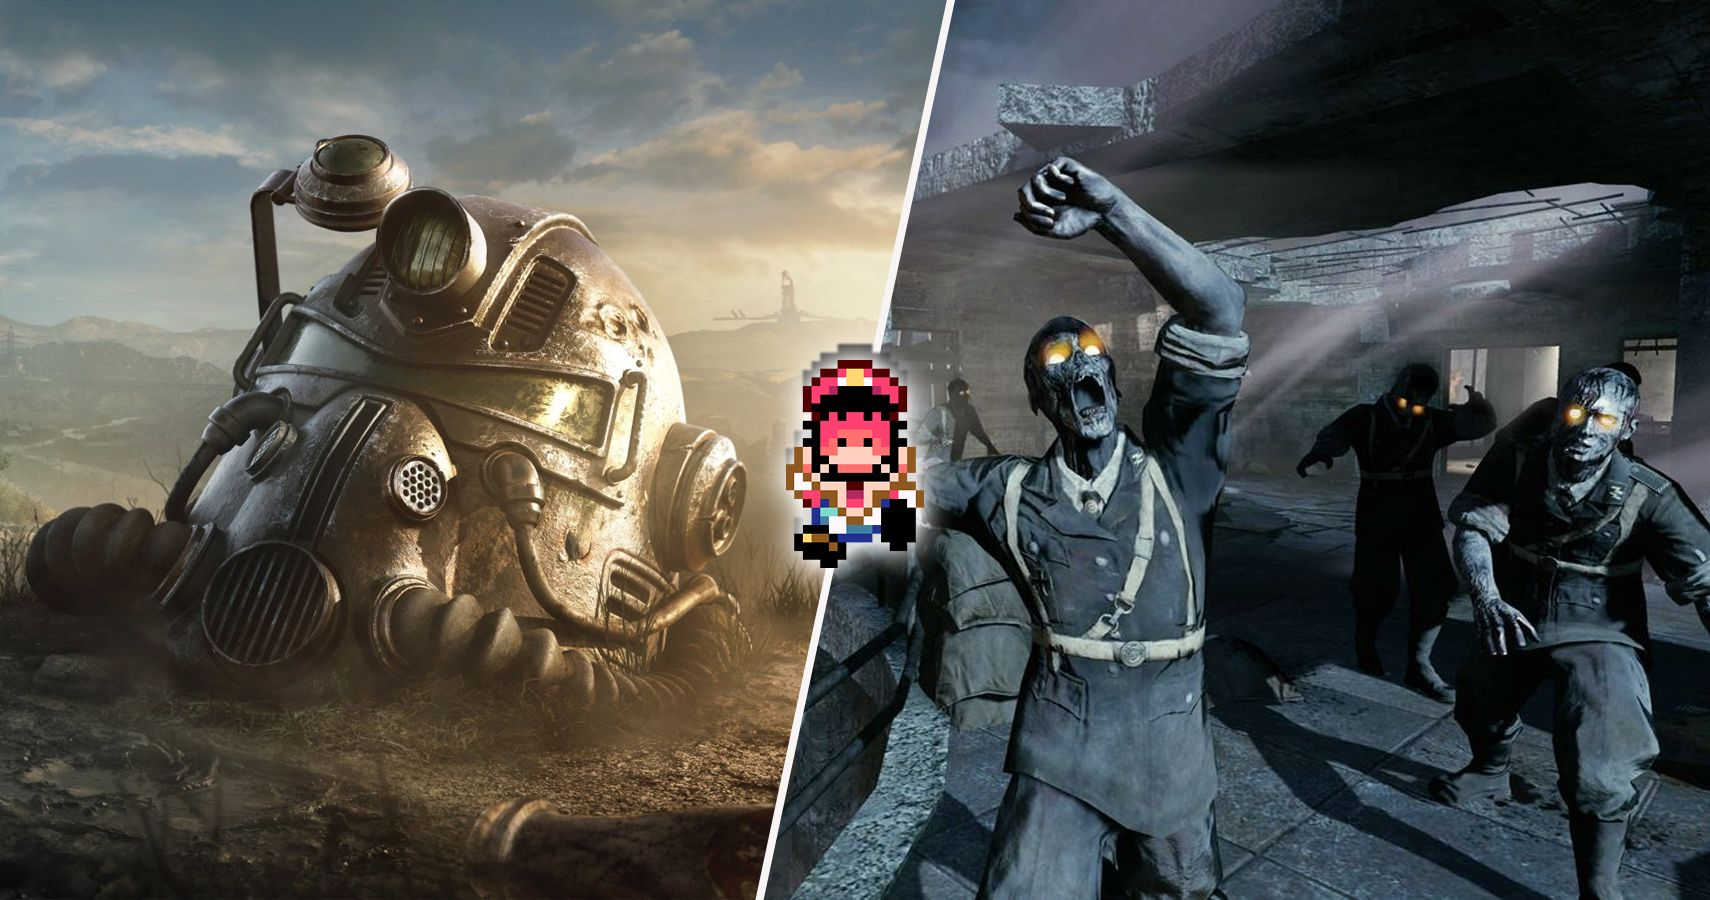 20 Disappointing Console Game Sequels That Let Fans Down